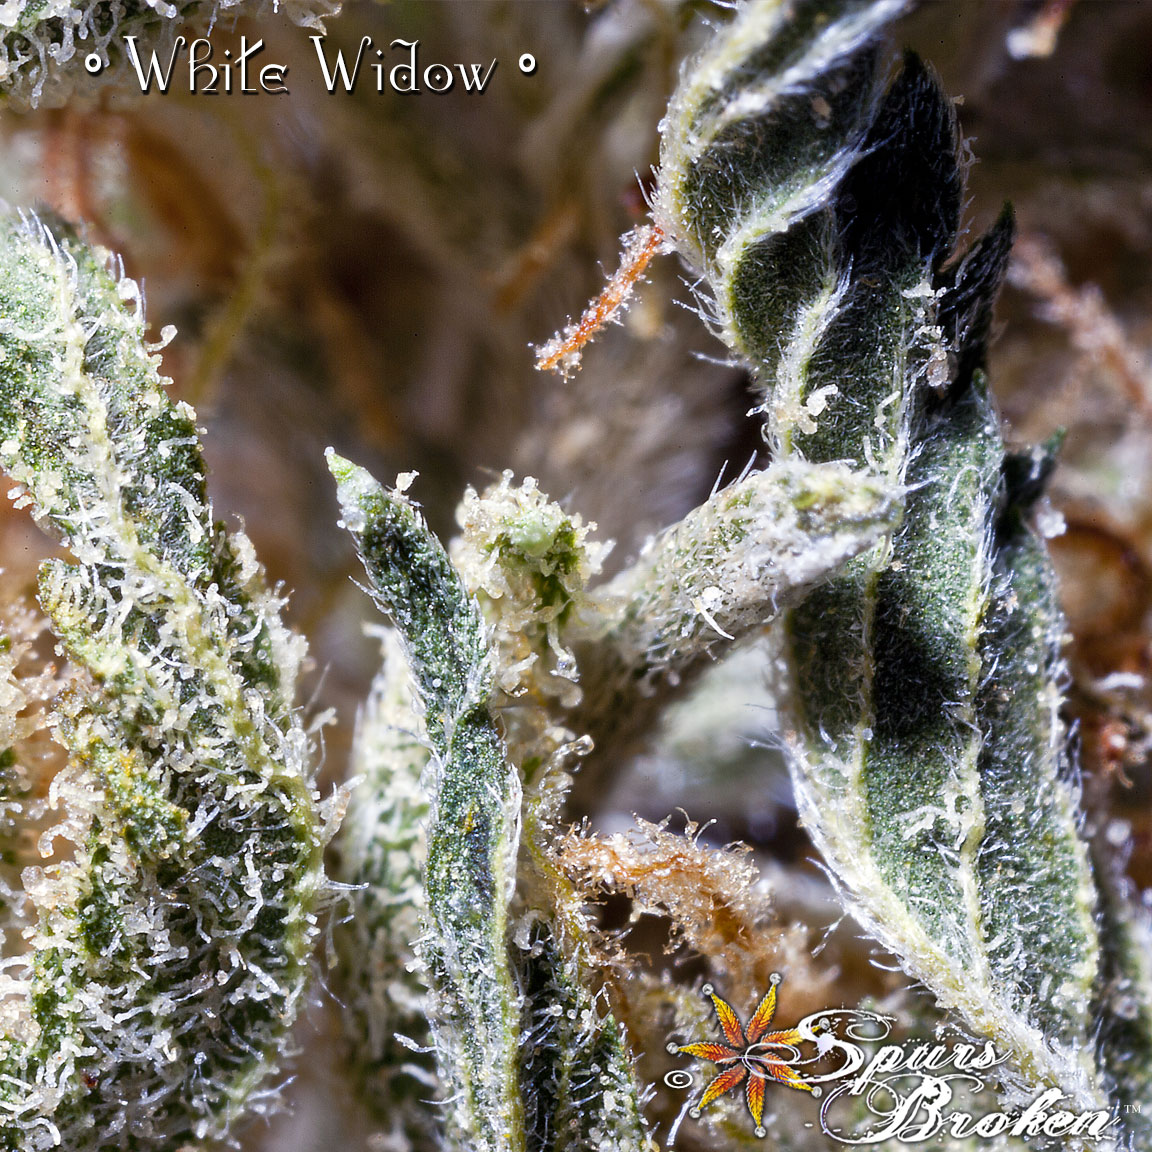 White Widow - Cannabis Macro Photography by Spurs Broken (Robert R. Sanders)